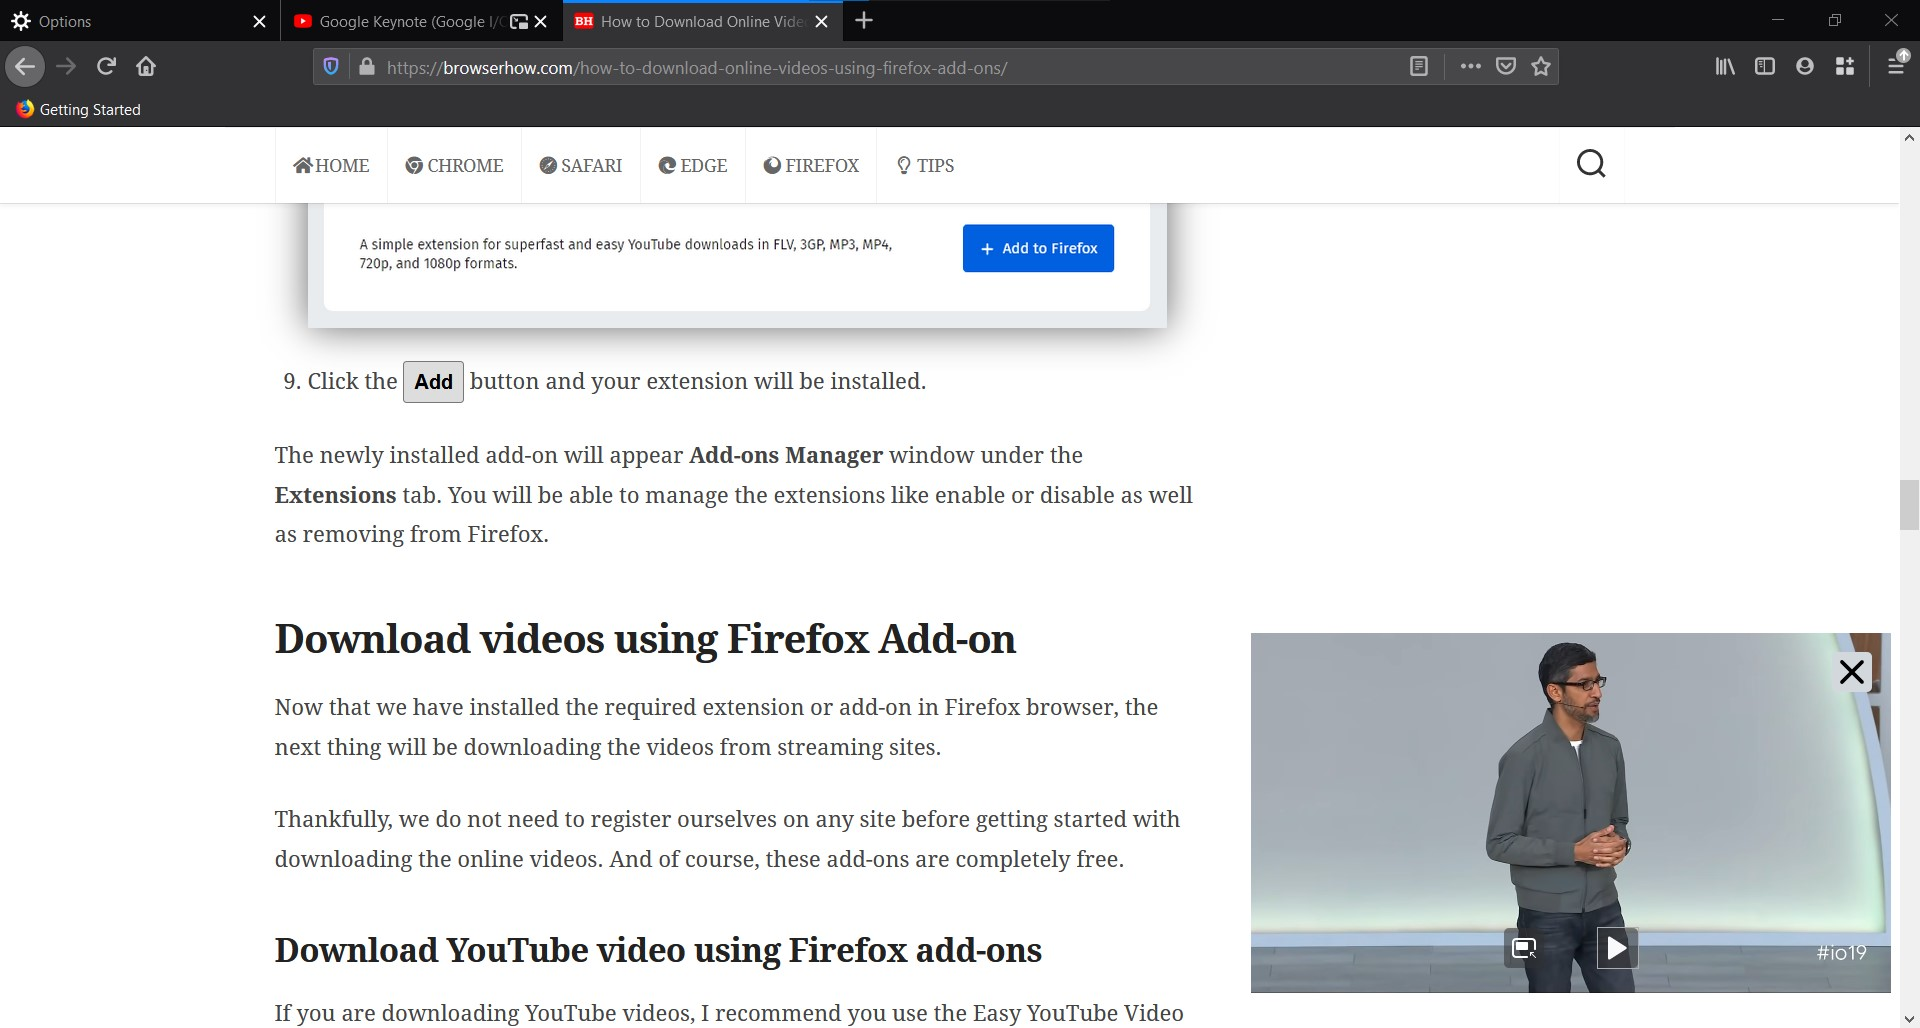 PiP Mode enabled on Firefox example